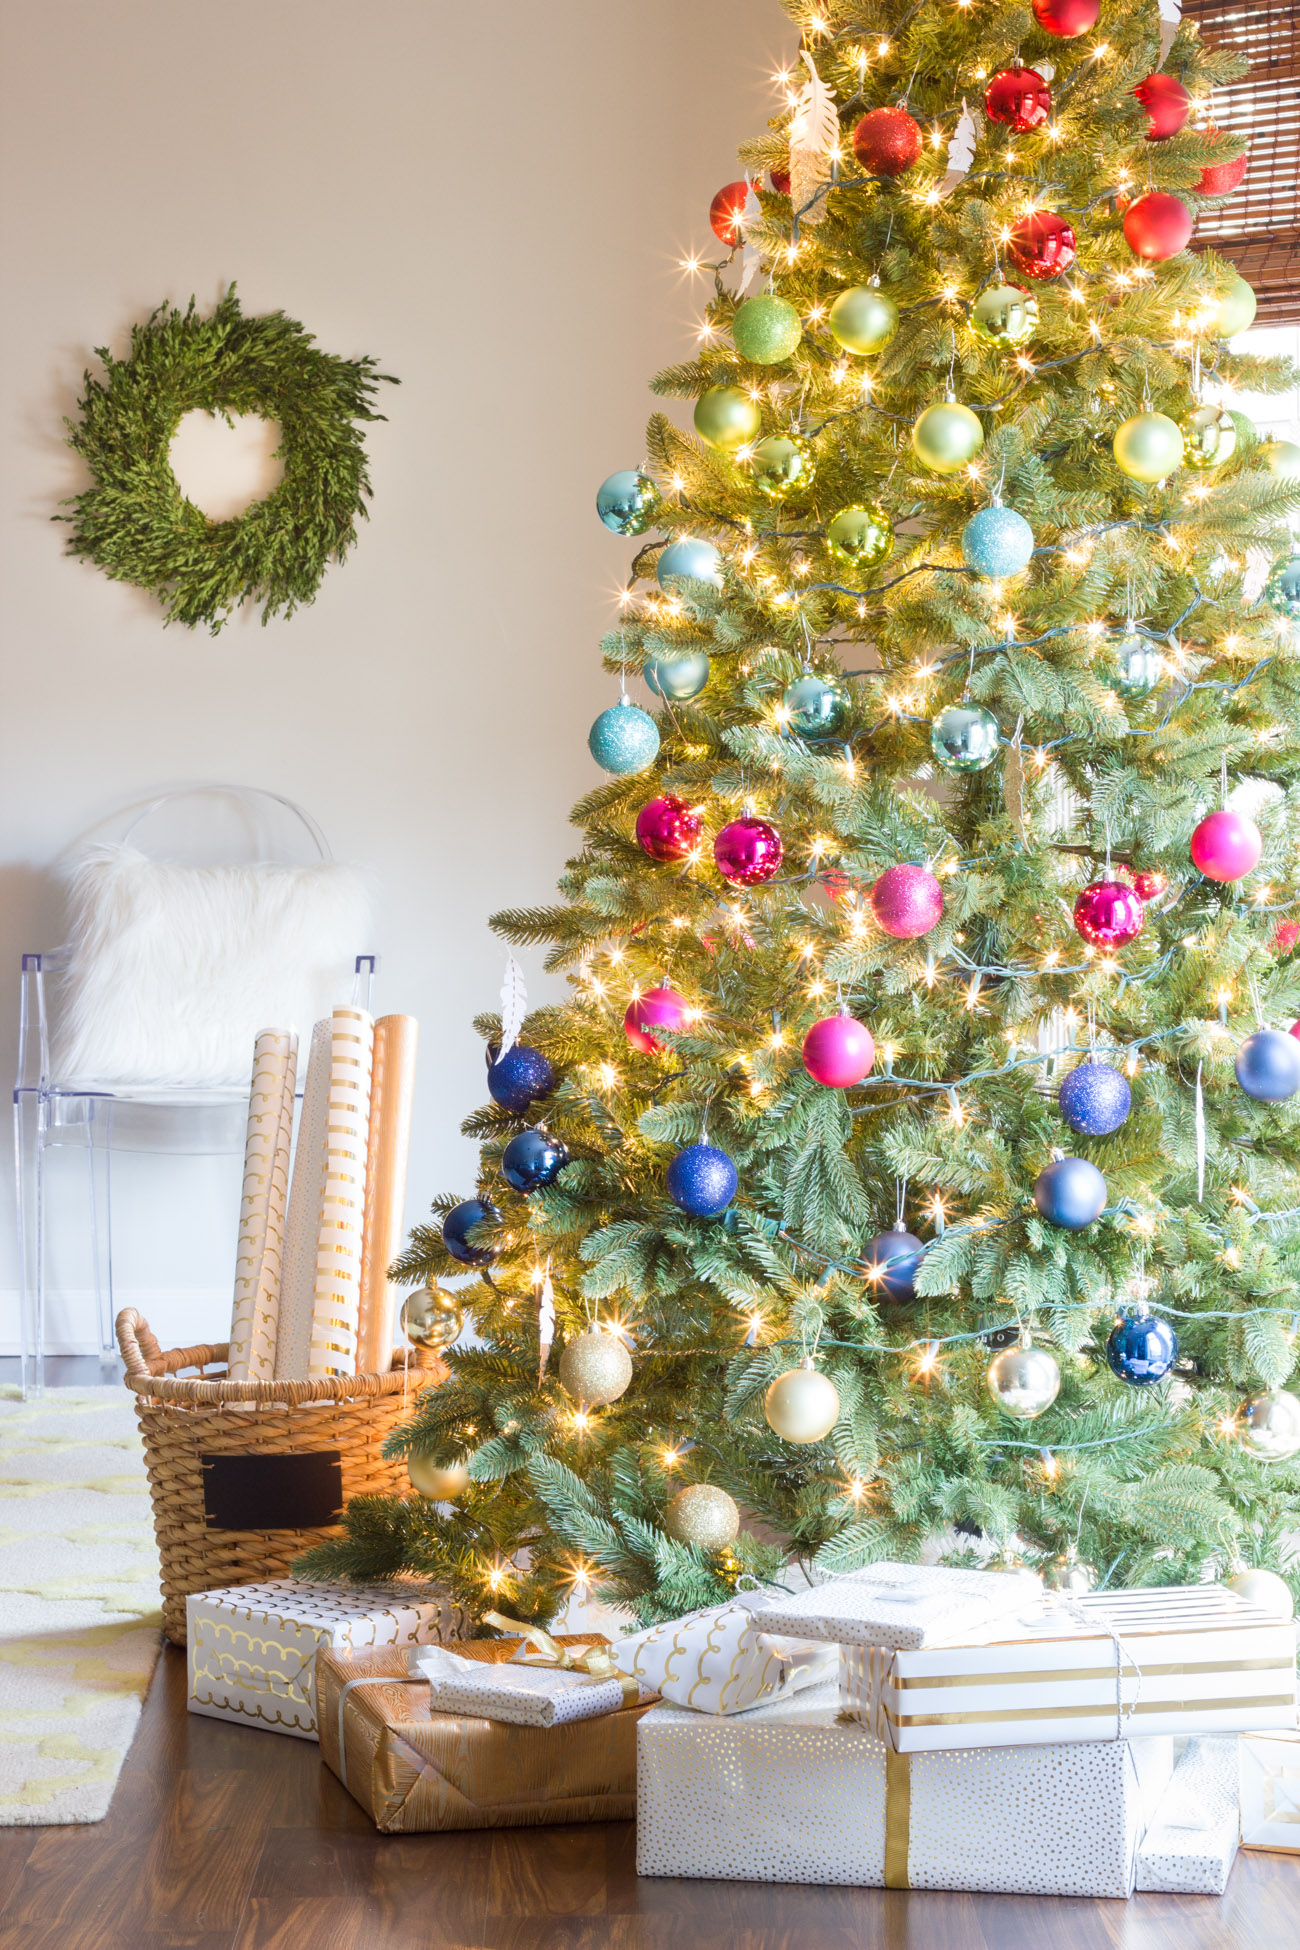 Holiday home tour part 2 colorful christmas decorations for Colorful christmas tree decorations